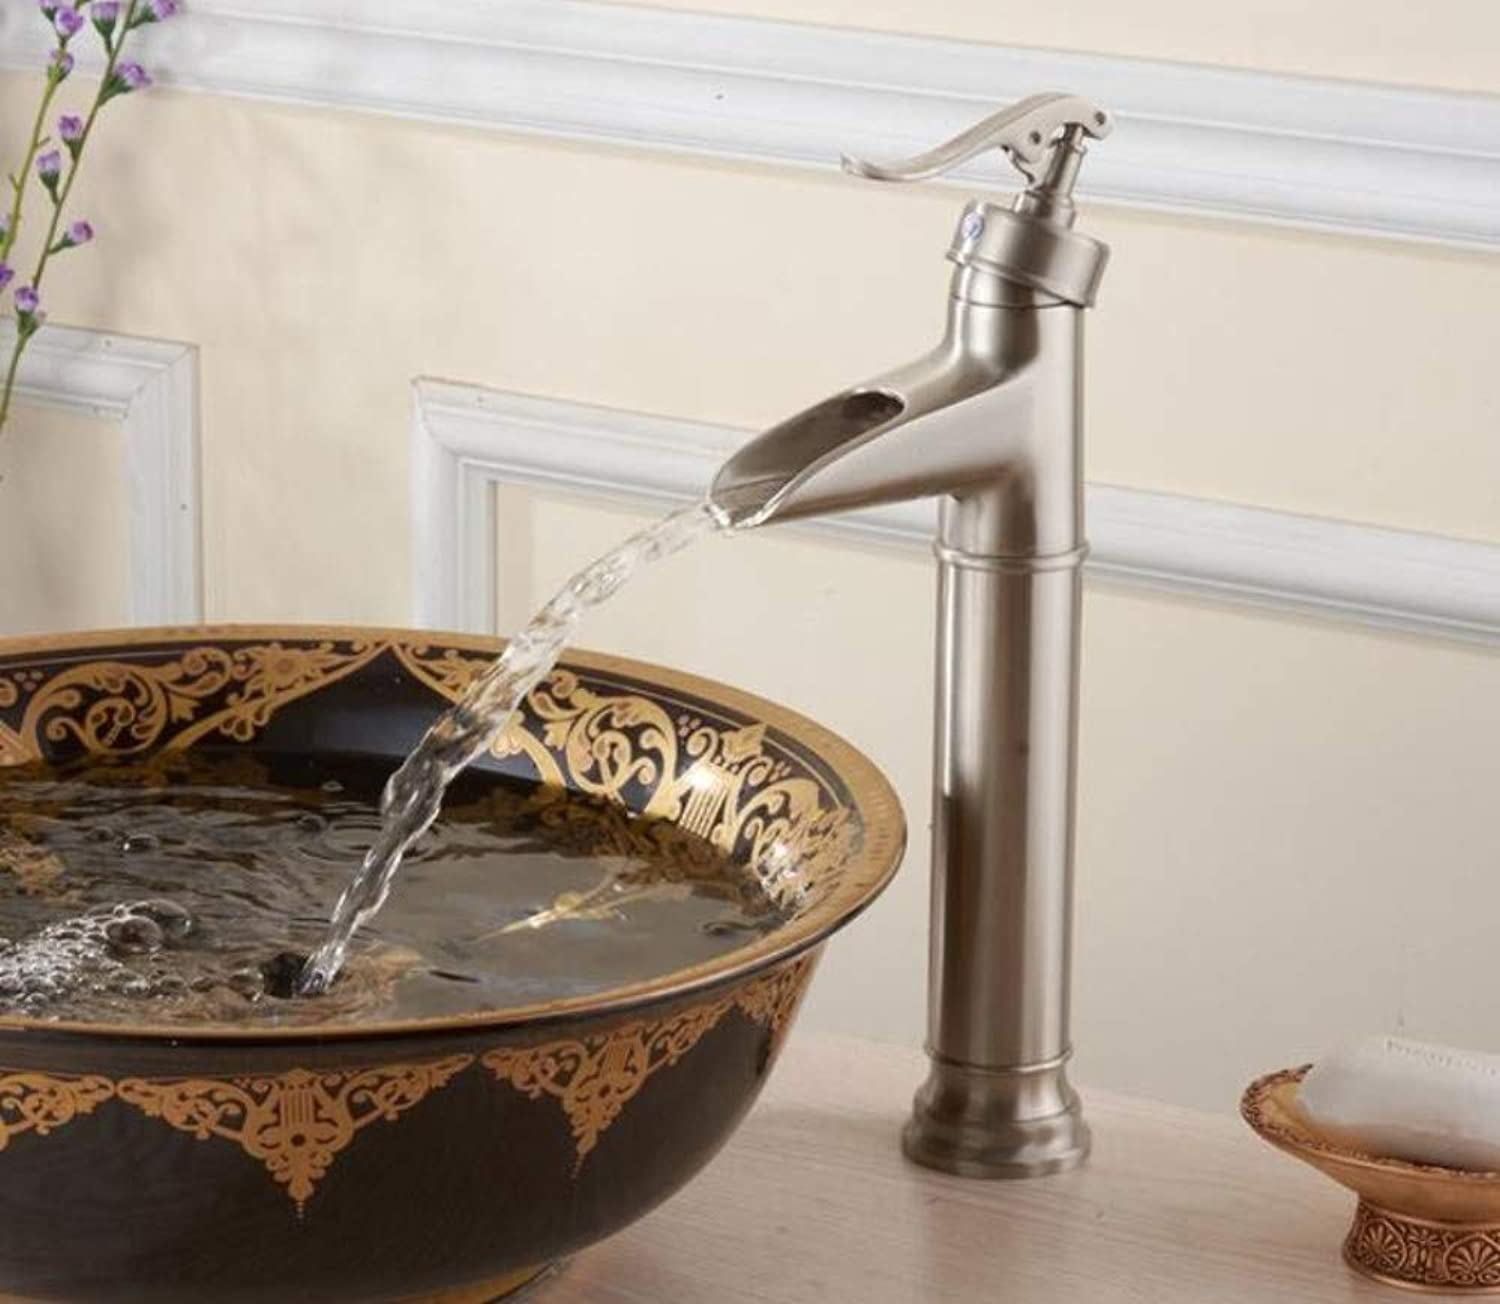 Xiehao Bathroom Waterfall Nickel Brushed Single Hole Deck Mounted Mixer Taps Bathroom Hot and Cold Water Basin Faucets